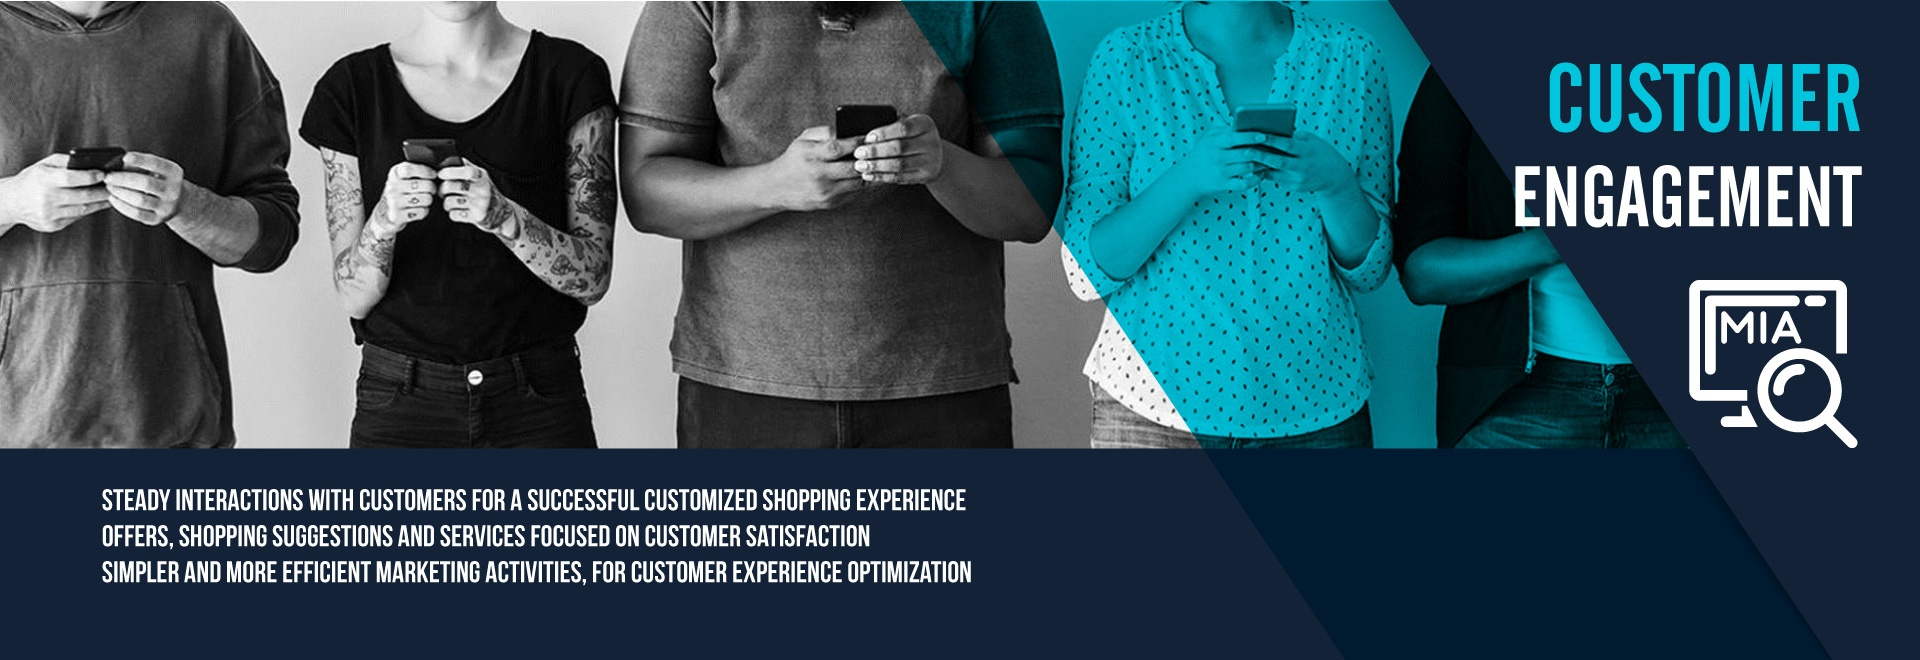 Customer Engagement Instruments to encrease interaction with customers